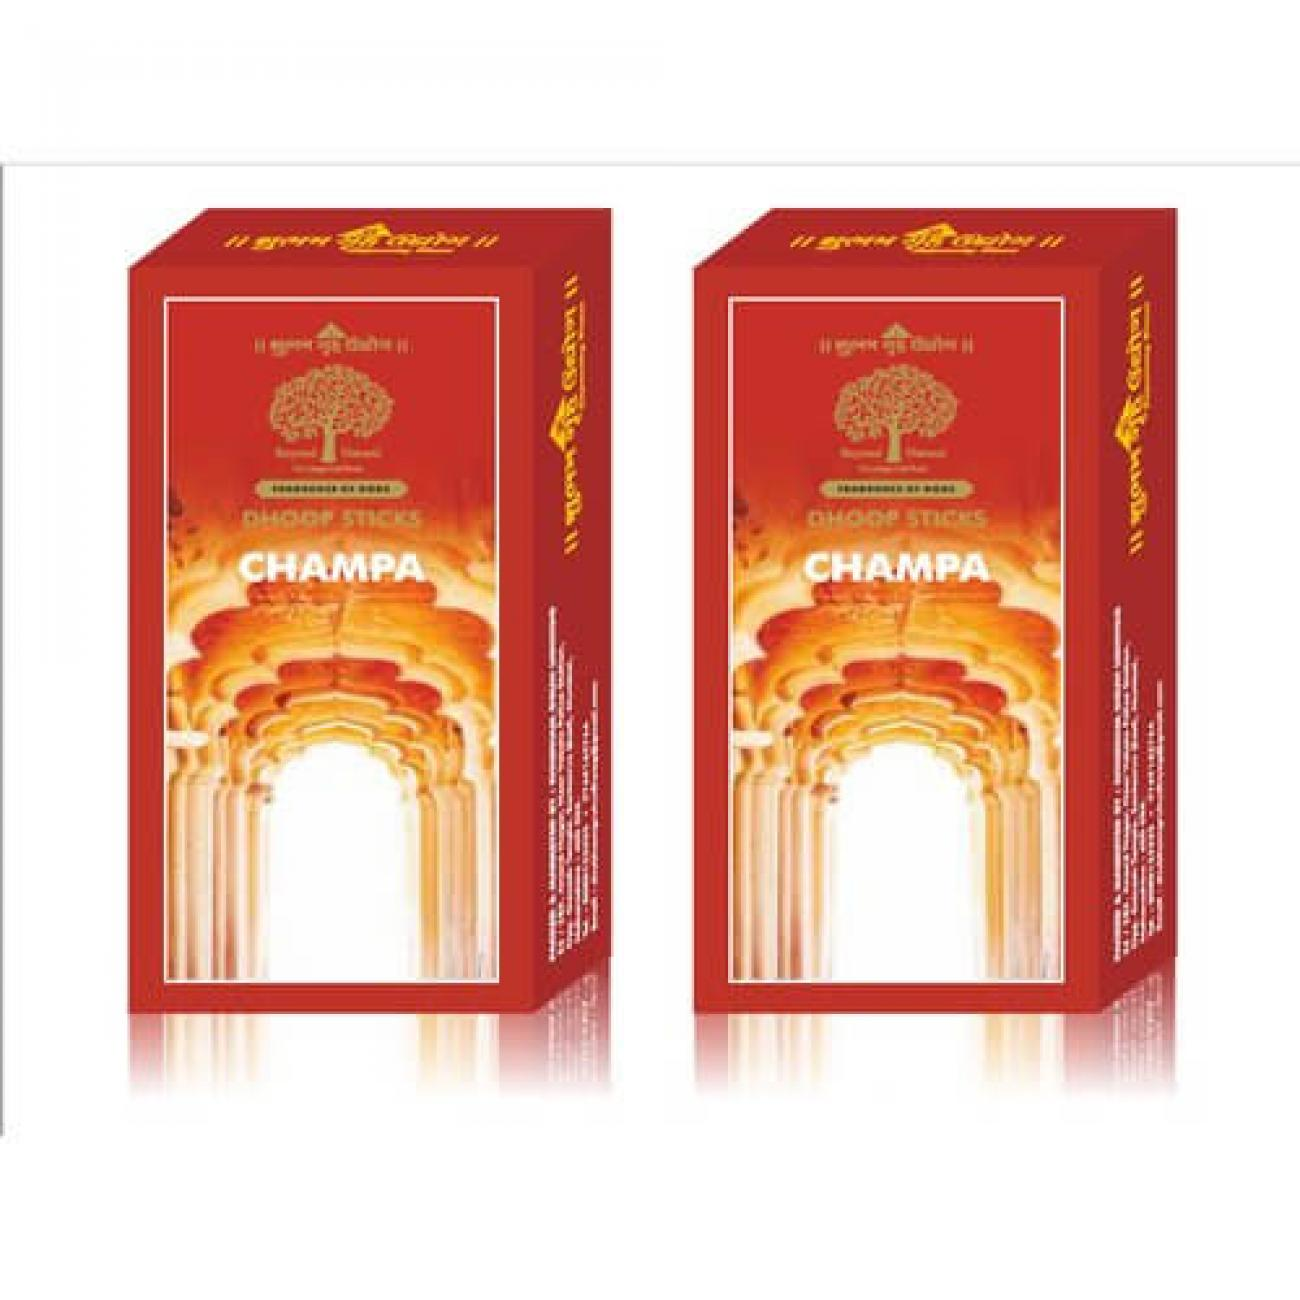 Champa Dhoop Sticks Combo Pack